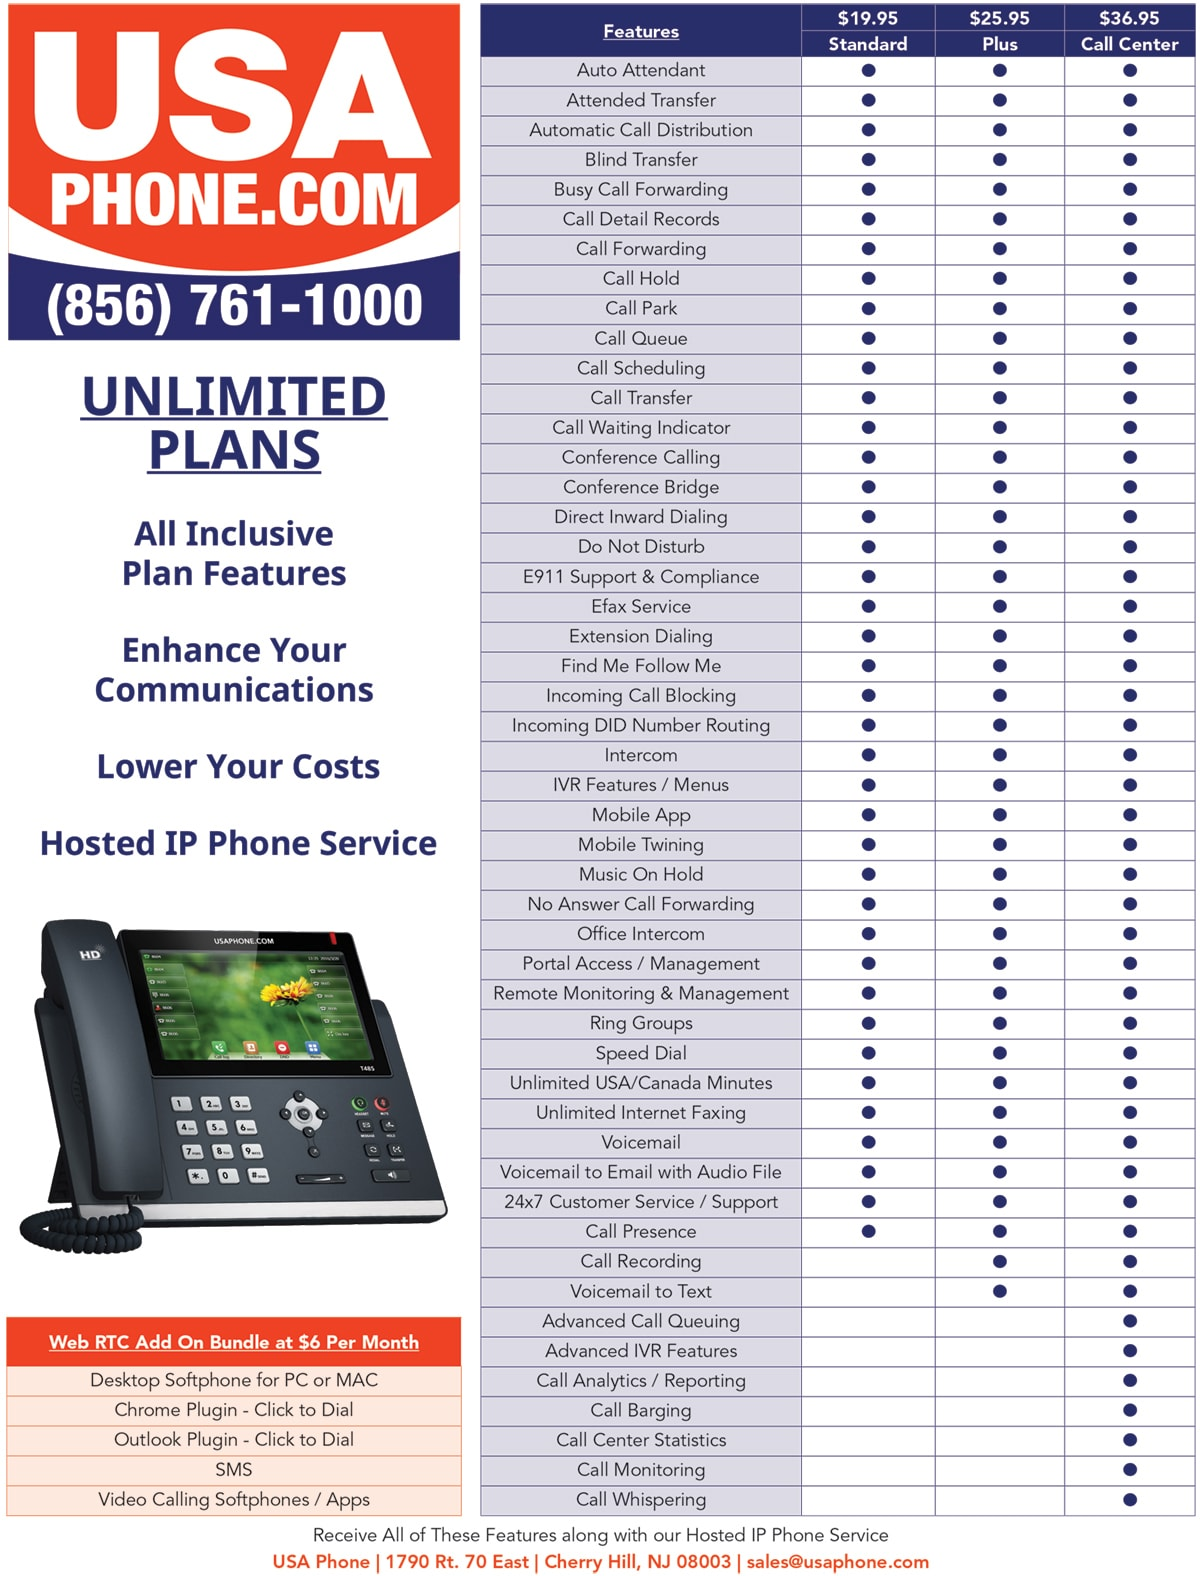 Umlimited Plans | VoIP | USA Phone | Cherry Hill, NJ